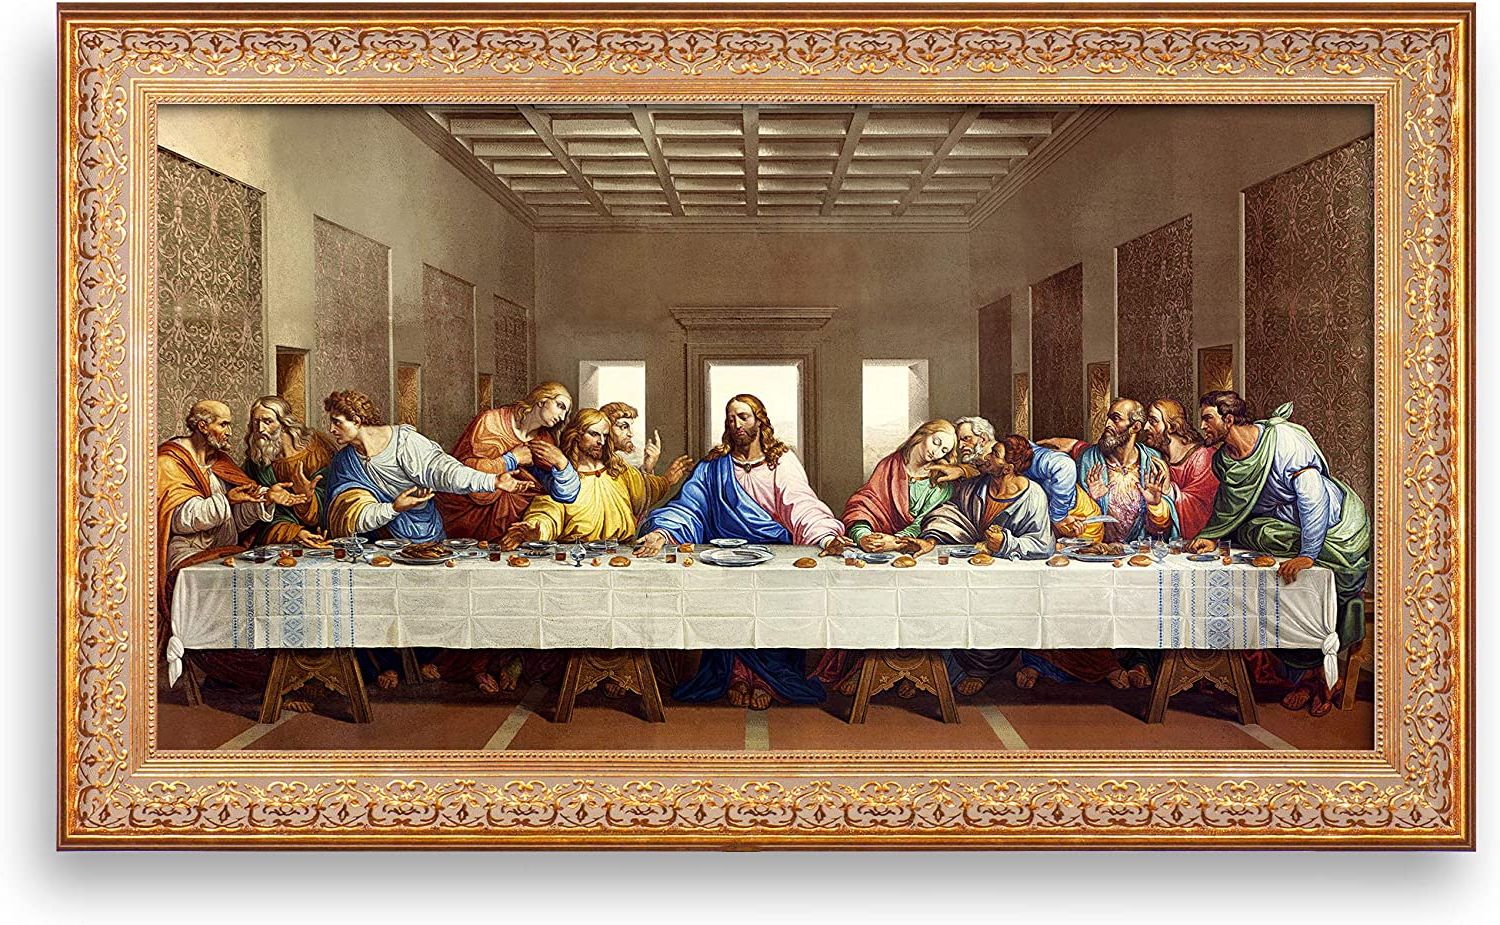 Blended Fabric Leonardo Davinci The Last Supper Wall Hangings Regarding Widely Used A&t Artwork The Last Supperleonardo Da Vinci The World Classic Art Reproductions, Giclee Prints Framed Wall Art For Home Decor, Image Size:30x (View 9 of 20)